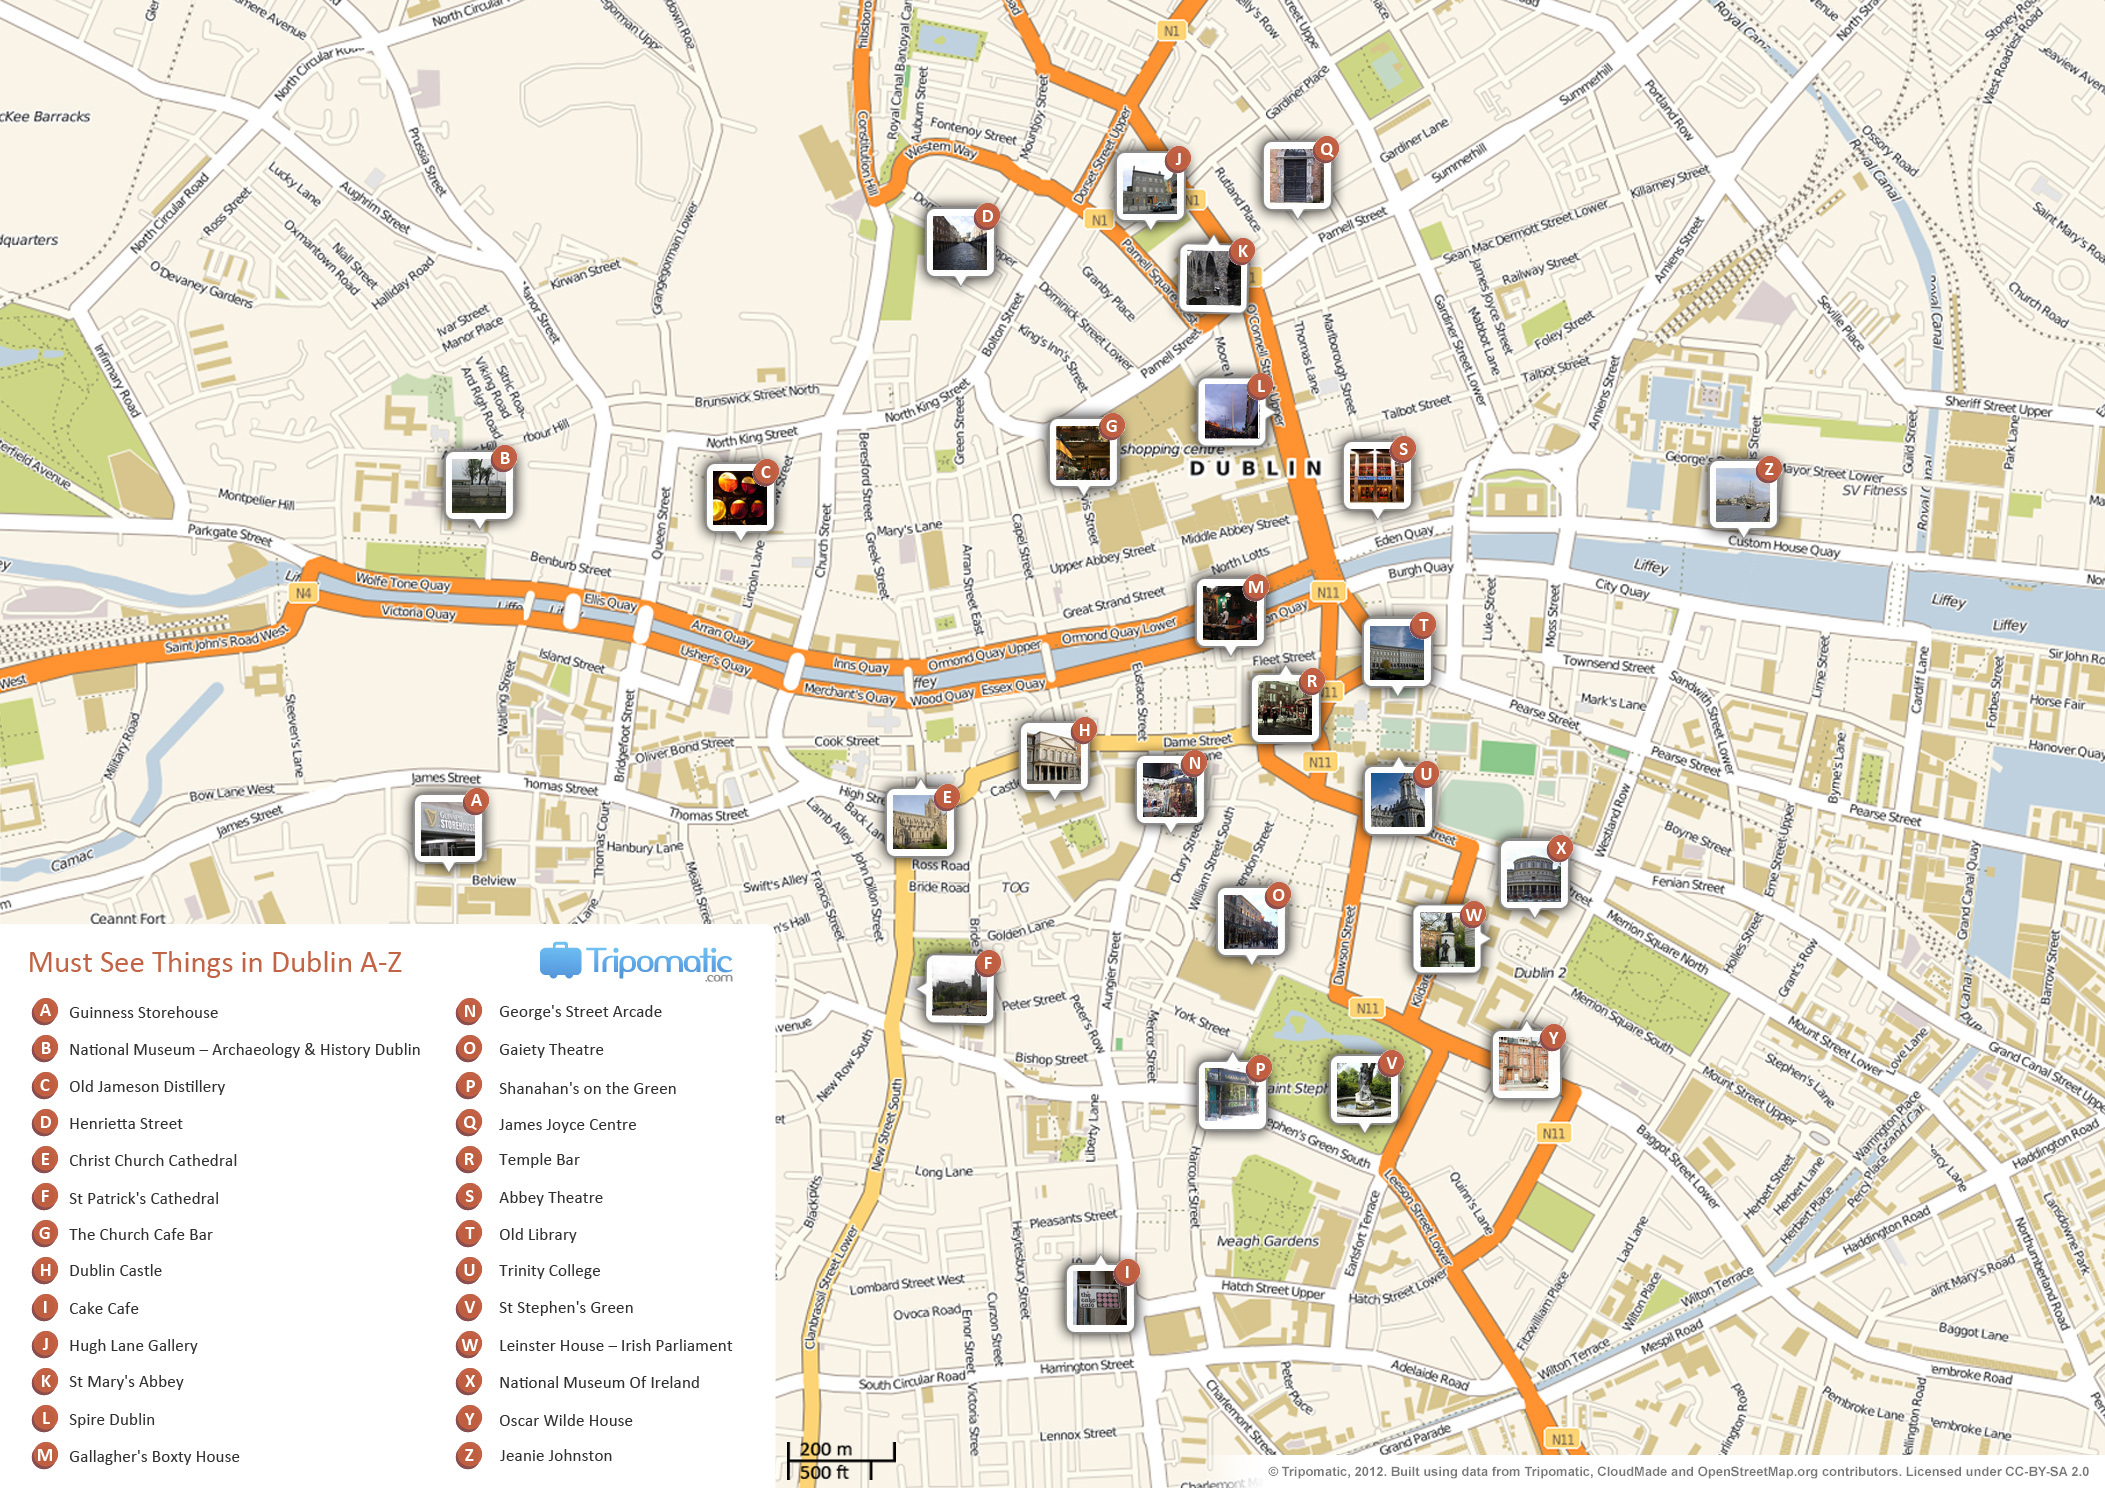 File:dublin Printable Tourist Attractions Map - Wikimedia Commons - Printable Street Maps